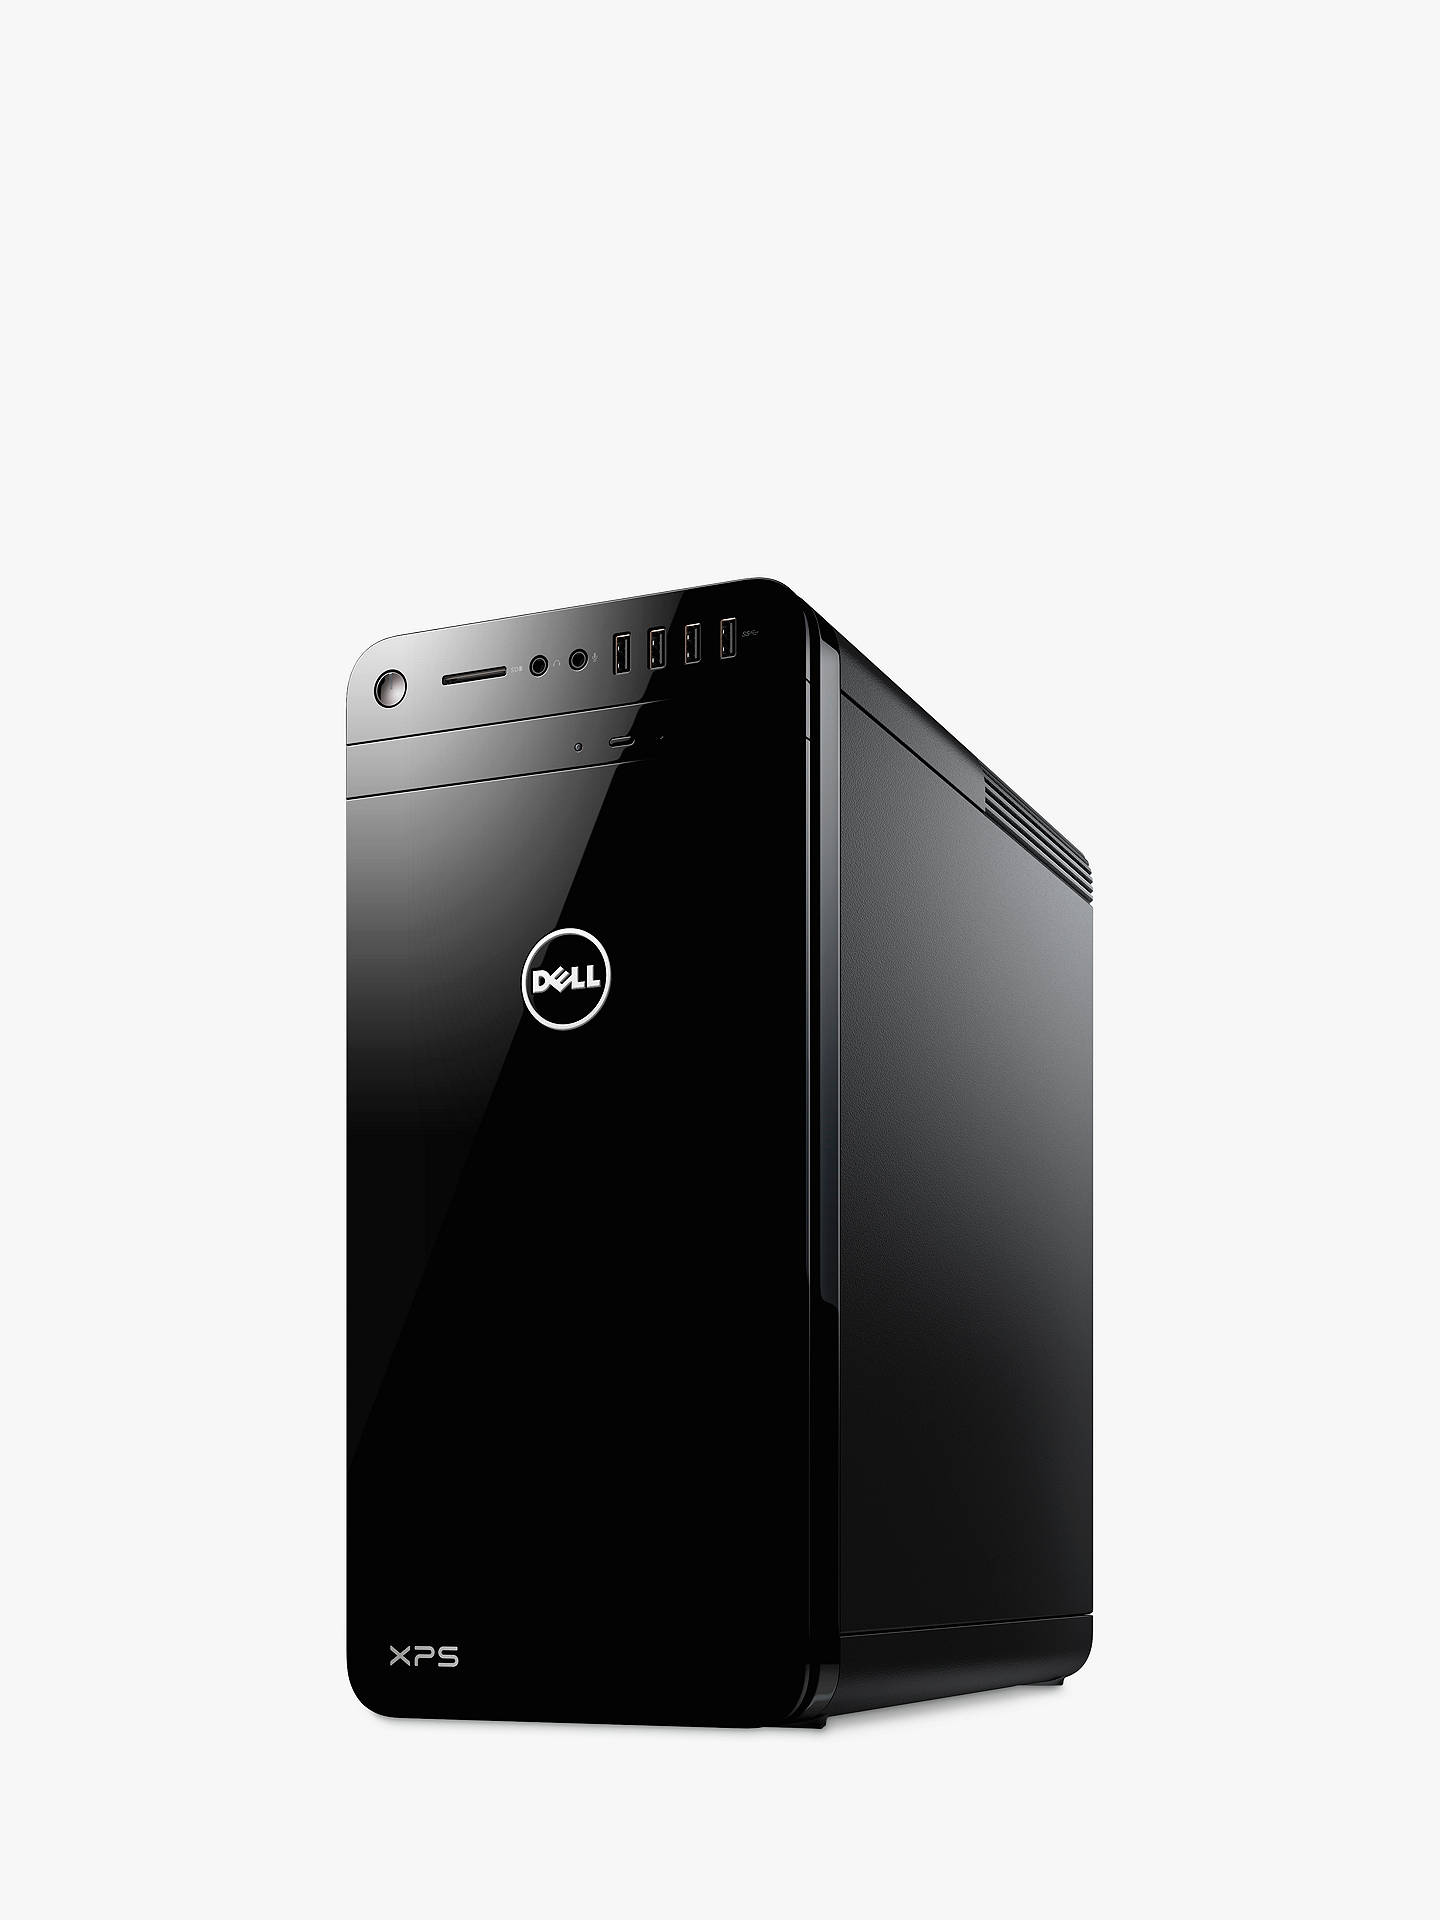 Buy XPS 8900 Desktop, Intel Core i7, 8GB RAM, 1TB HDD + 16GB Intel Optane Memory, Nvidia Geforce GTX 1060, Black Online at johnlewis.com